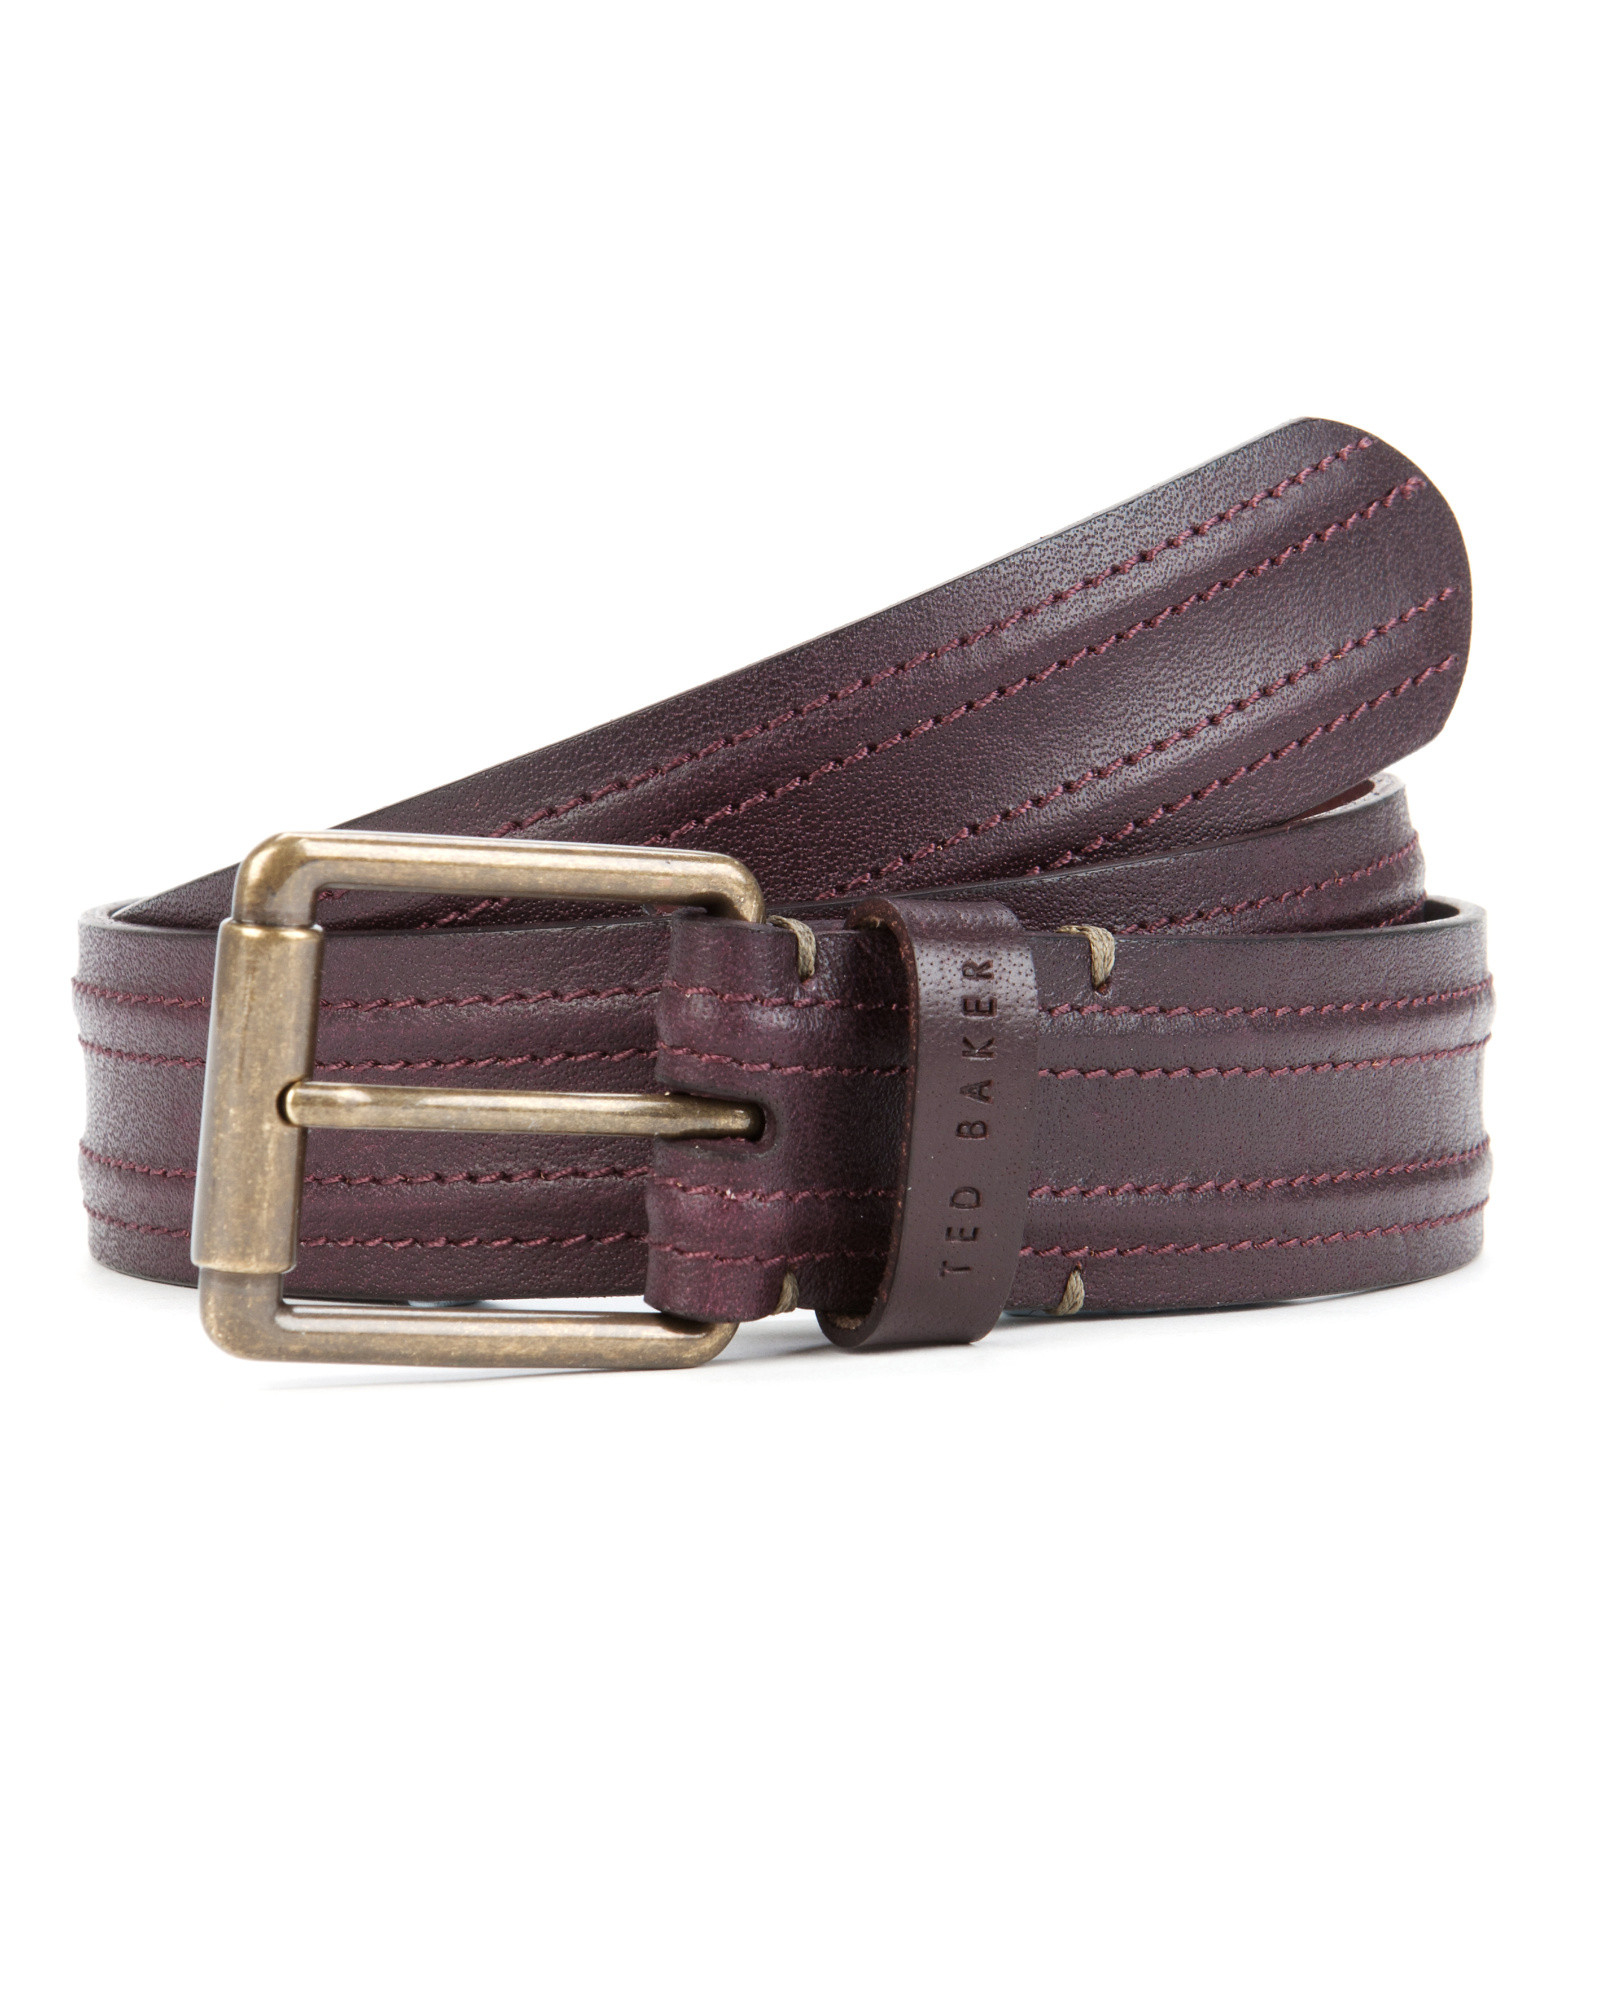 ted baker stitched leather belt in purple for oxblood